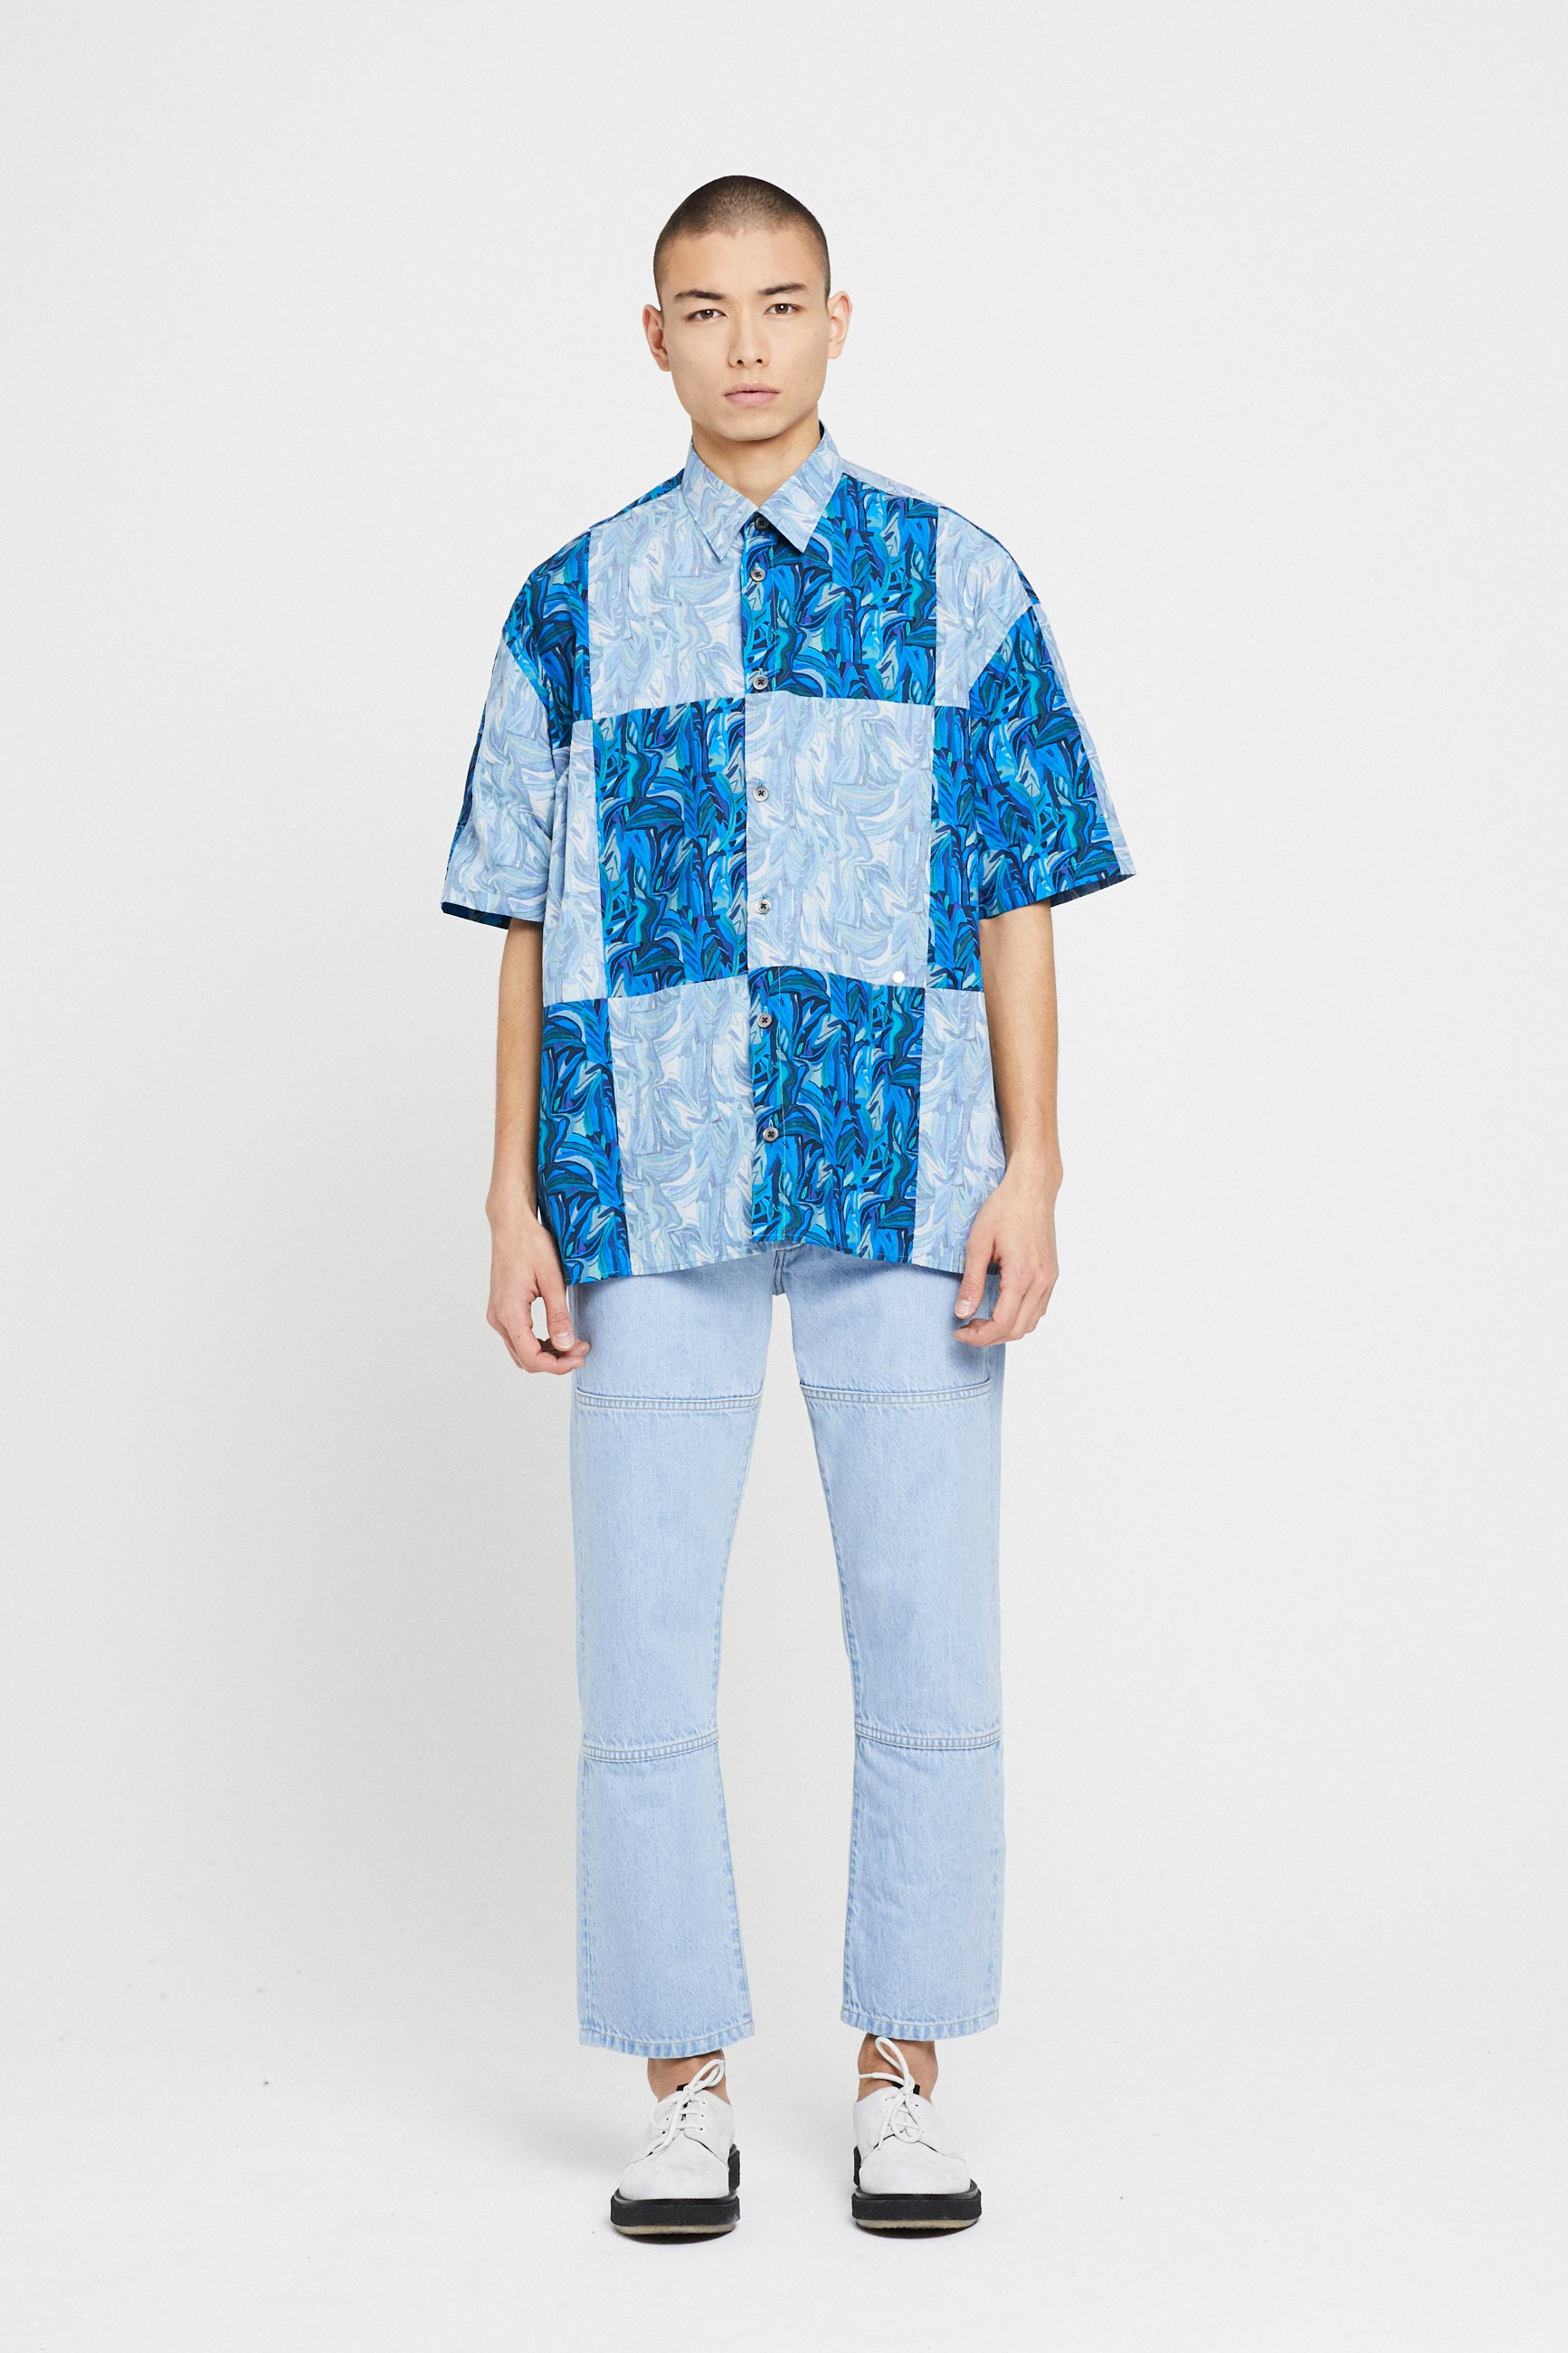 Études Illusion SS Cut Up Liberty Blue Shirt 1